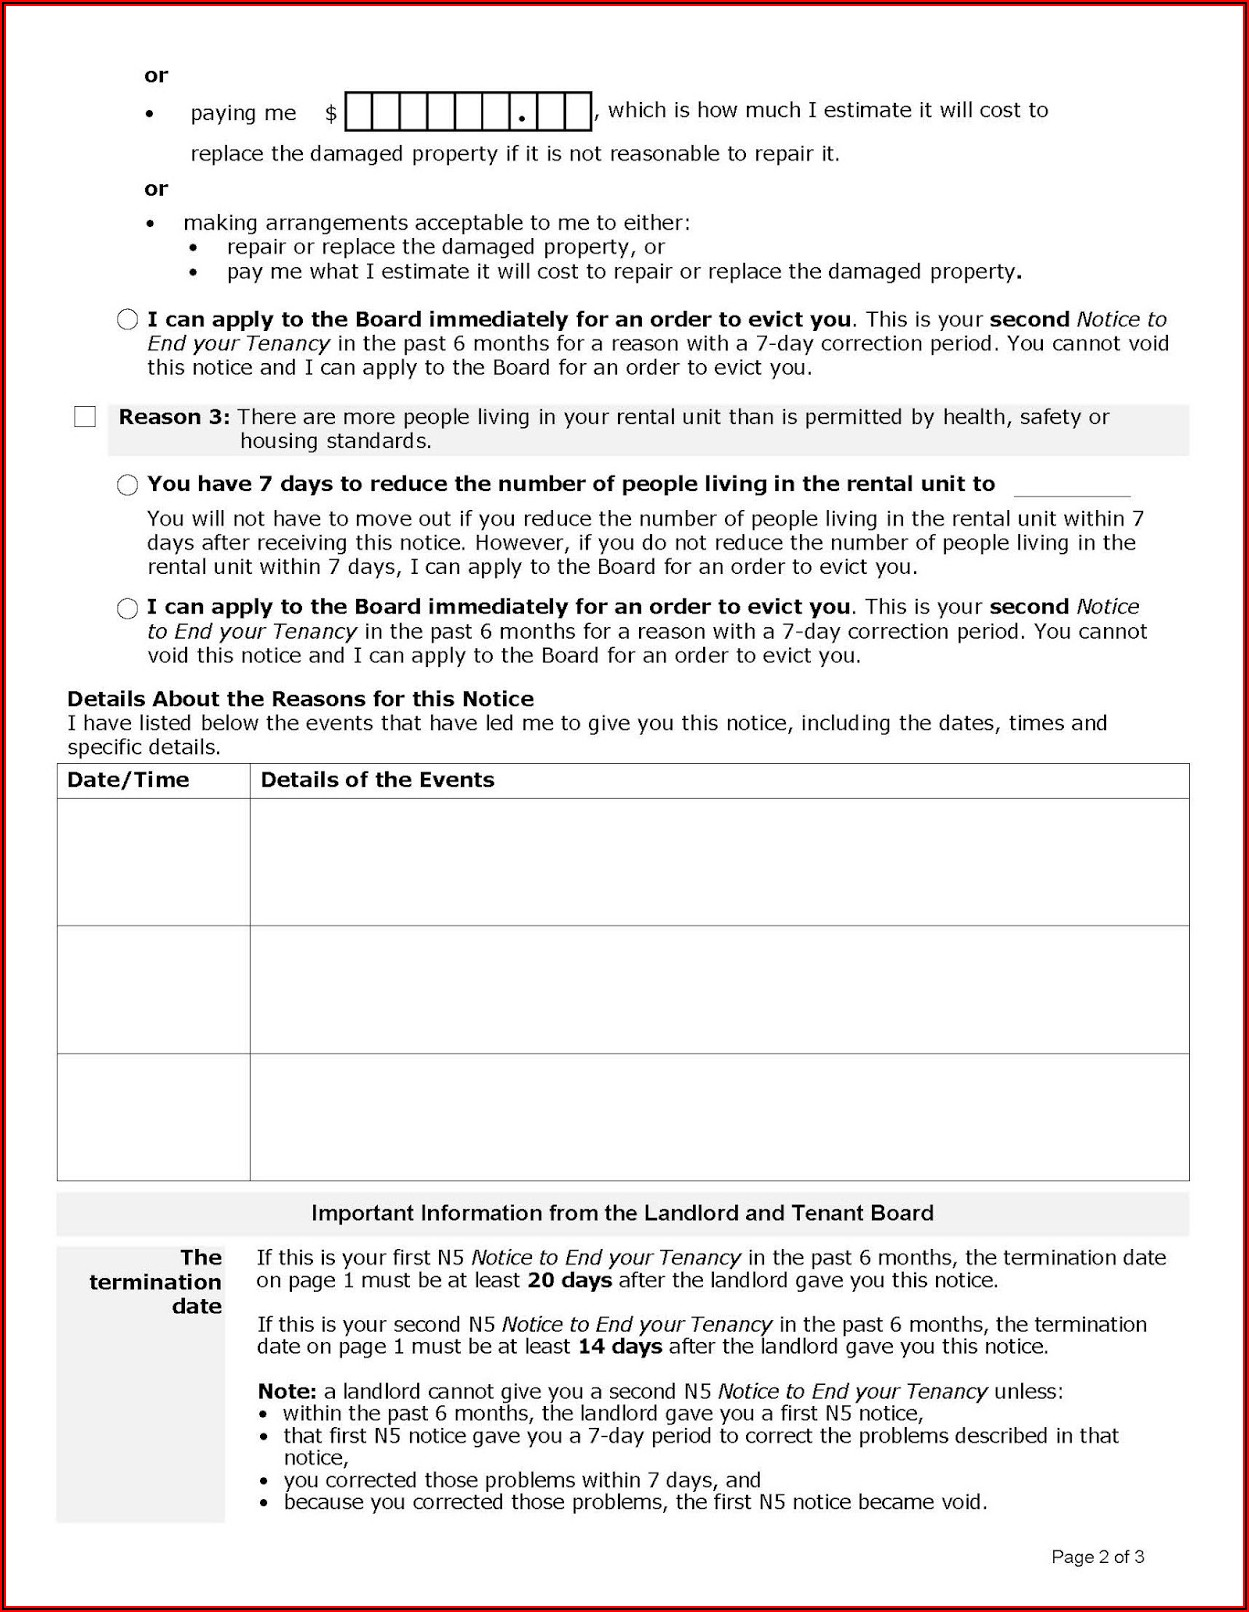 Form To Evict Tenant Ontario